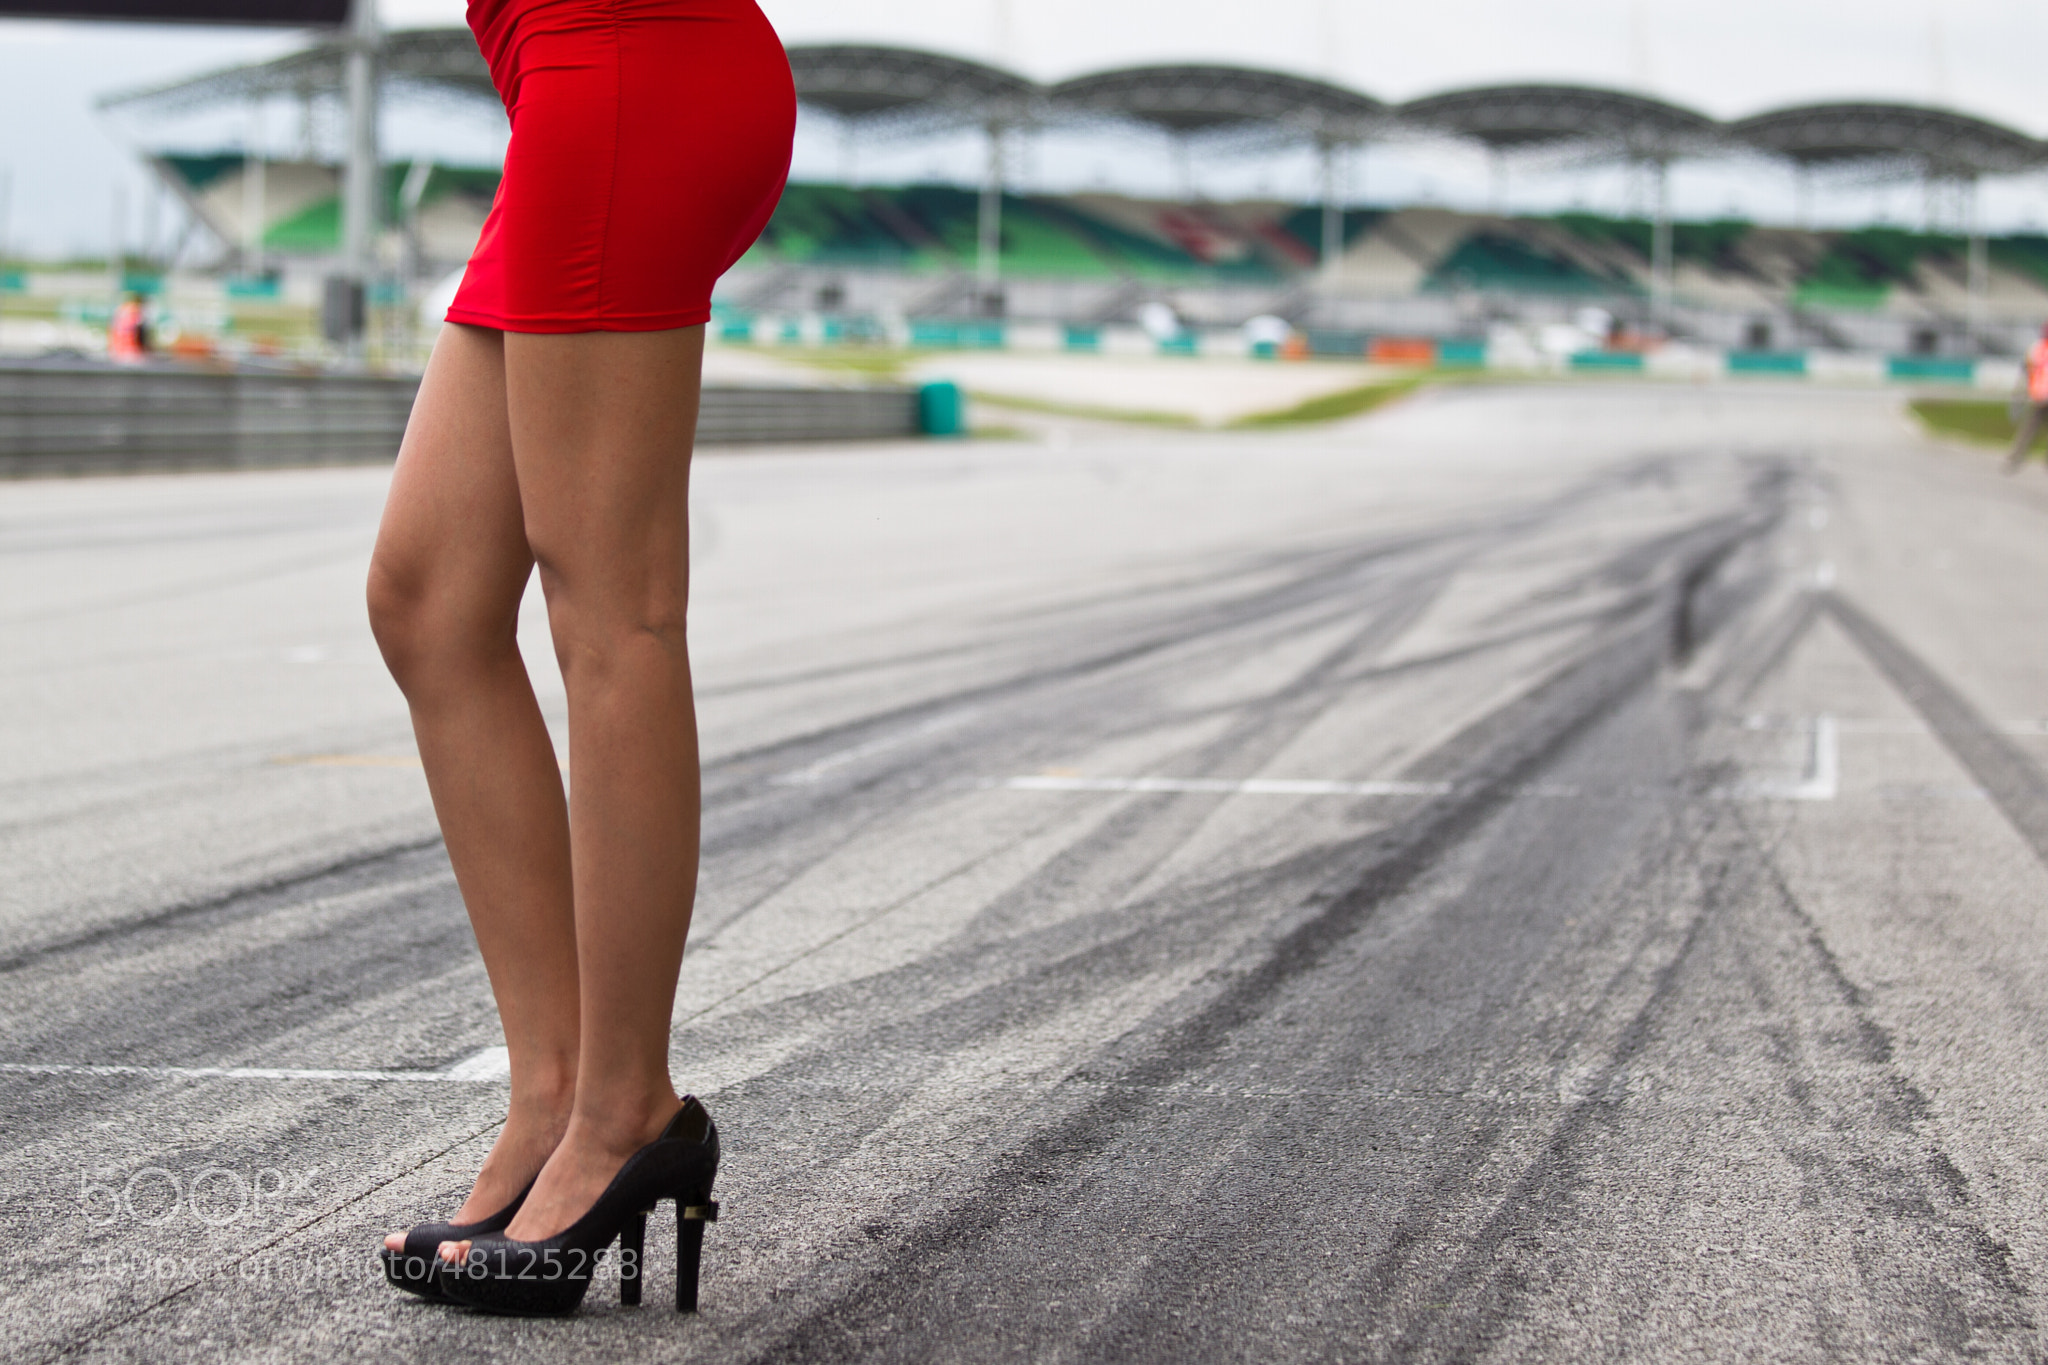 Photograph Grid Girl by Hazrin CRIC on 500px